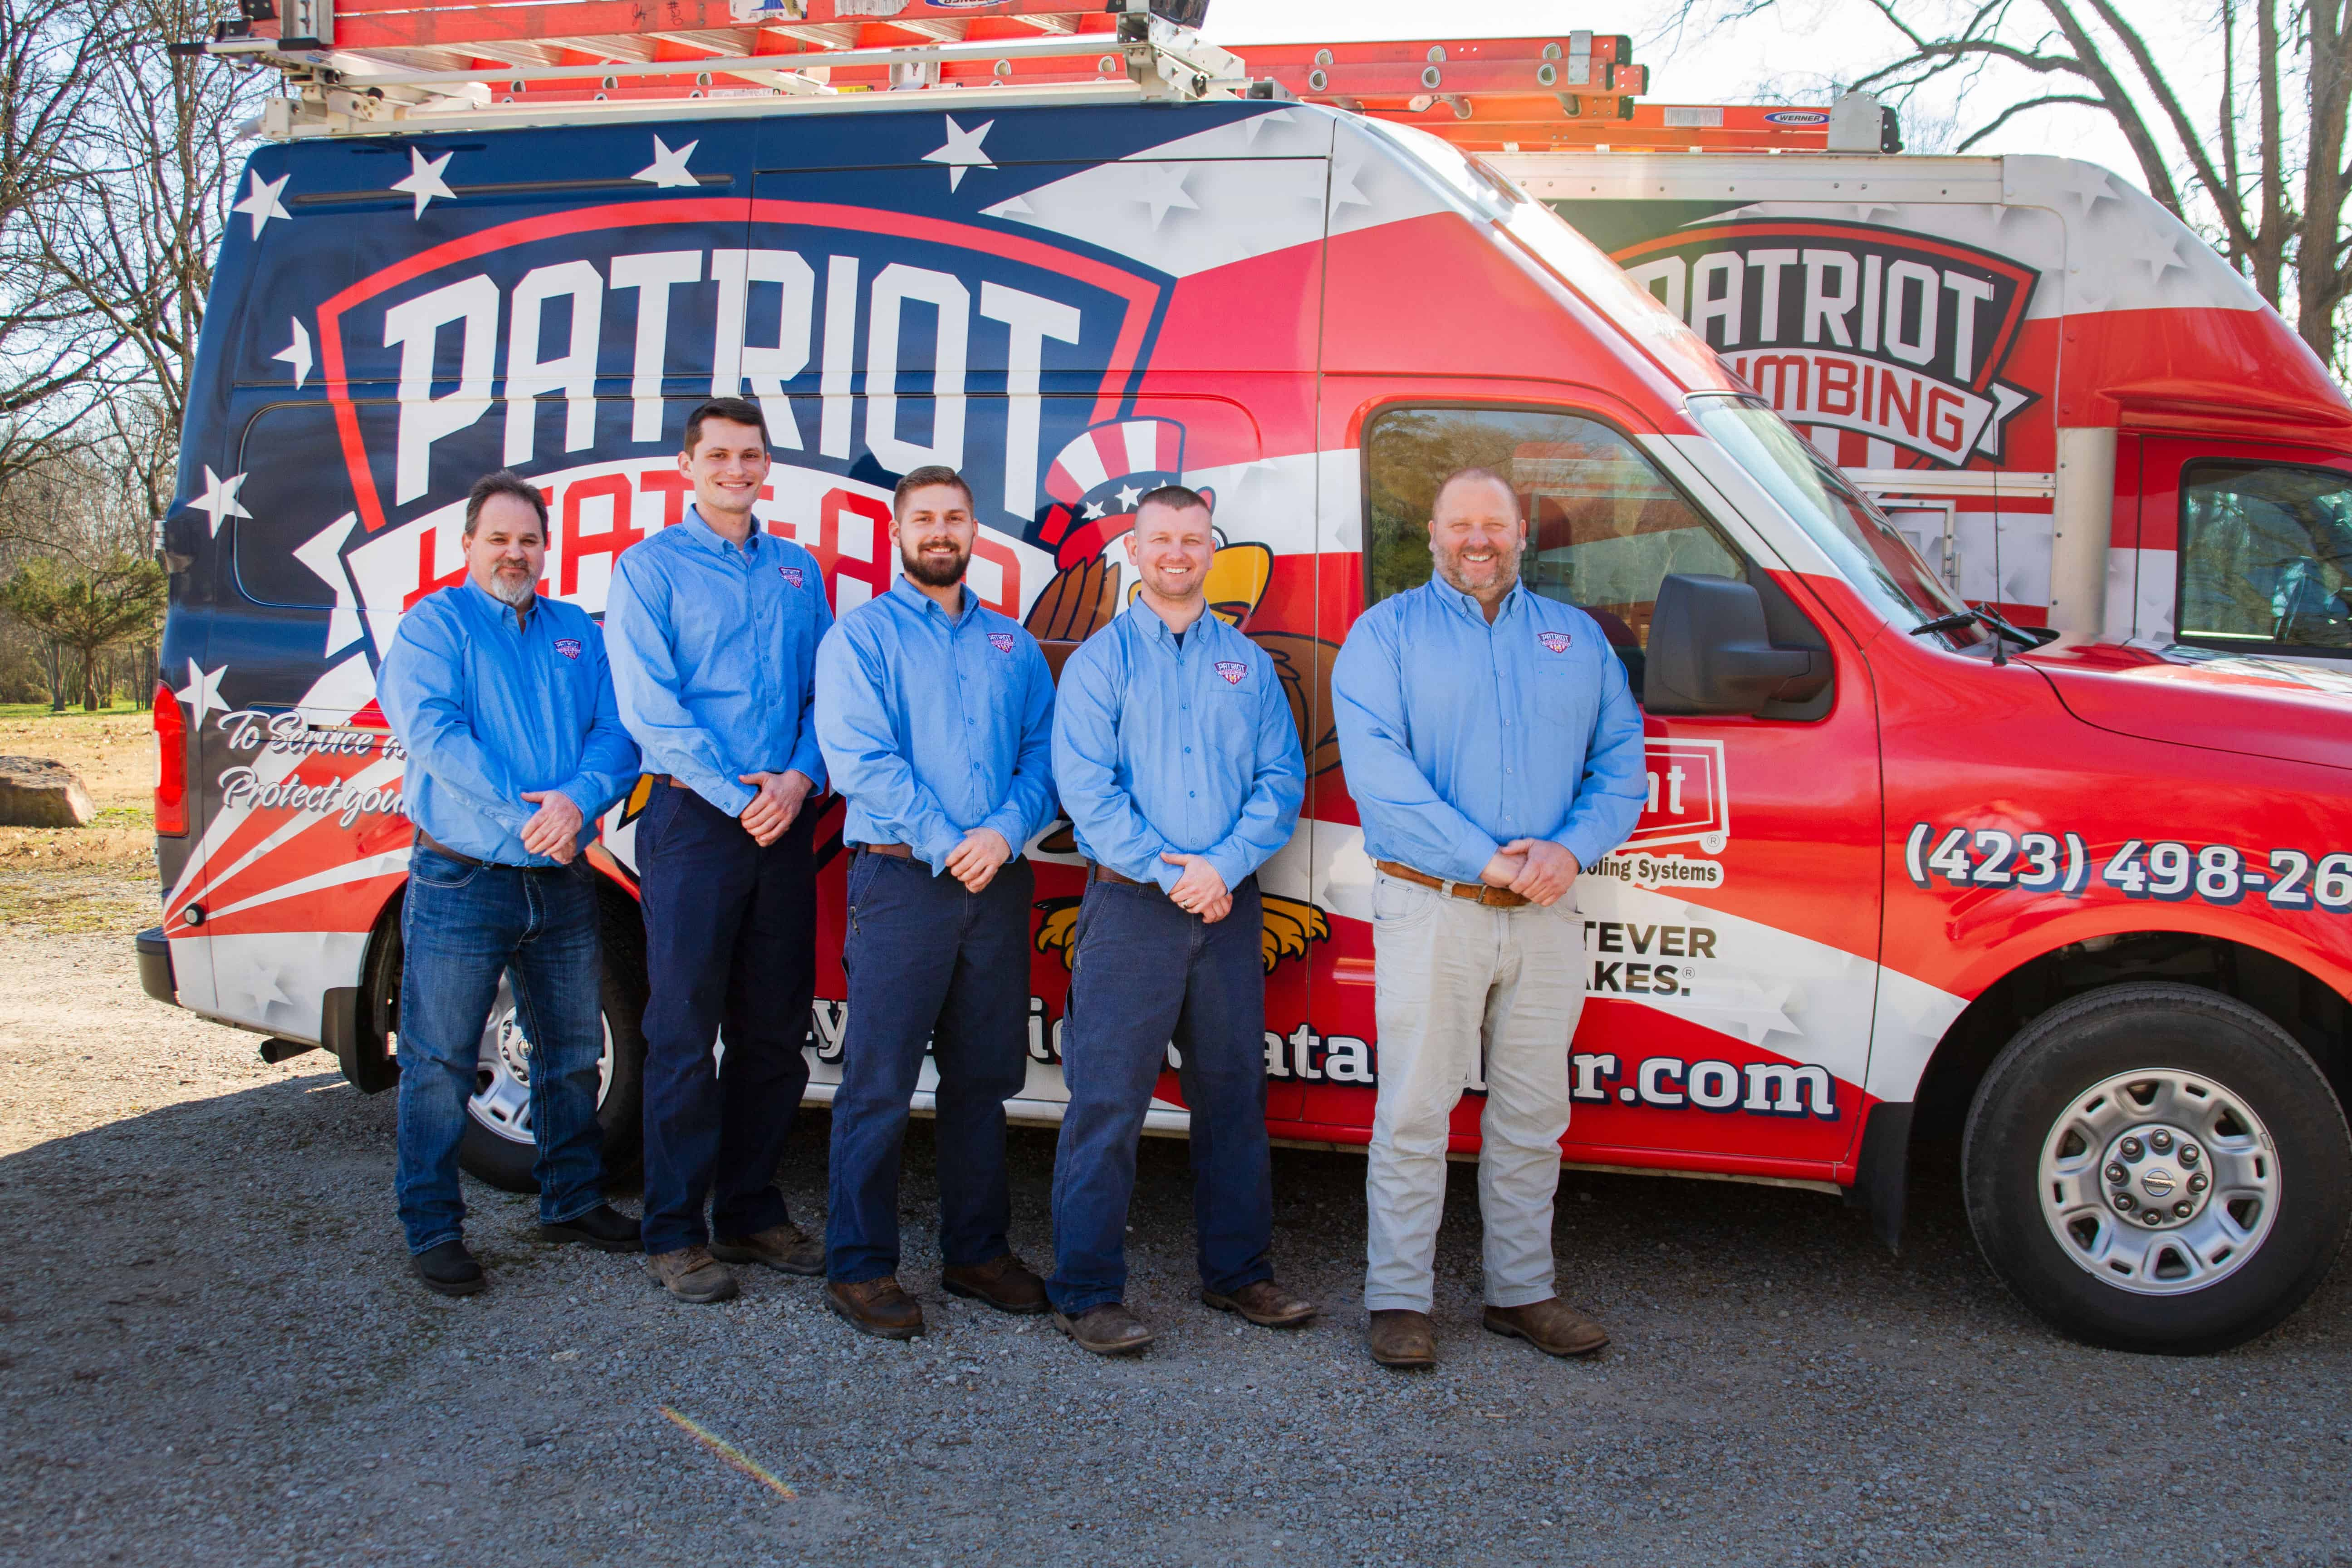 Plumber in Chattanooga, TN | Patriot Plumbing | Plumber in Cleveland, TN